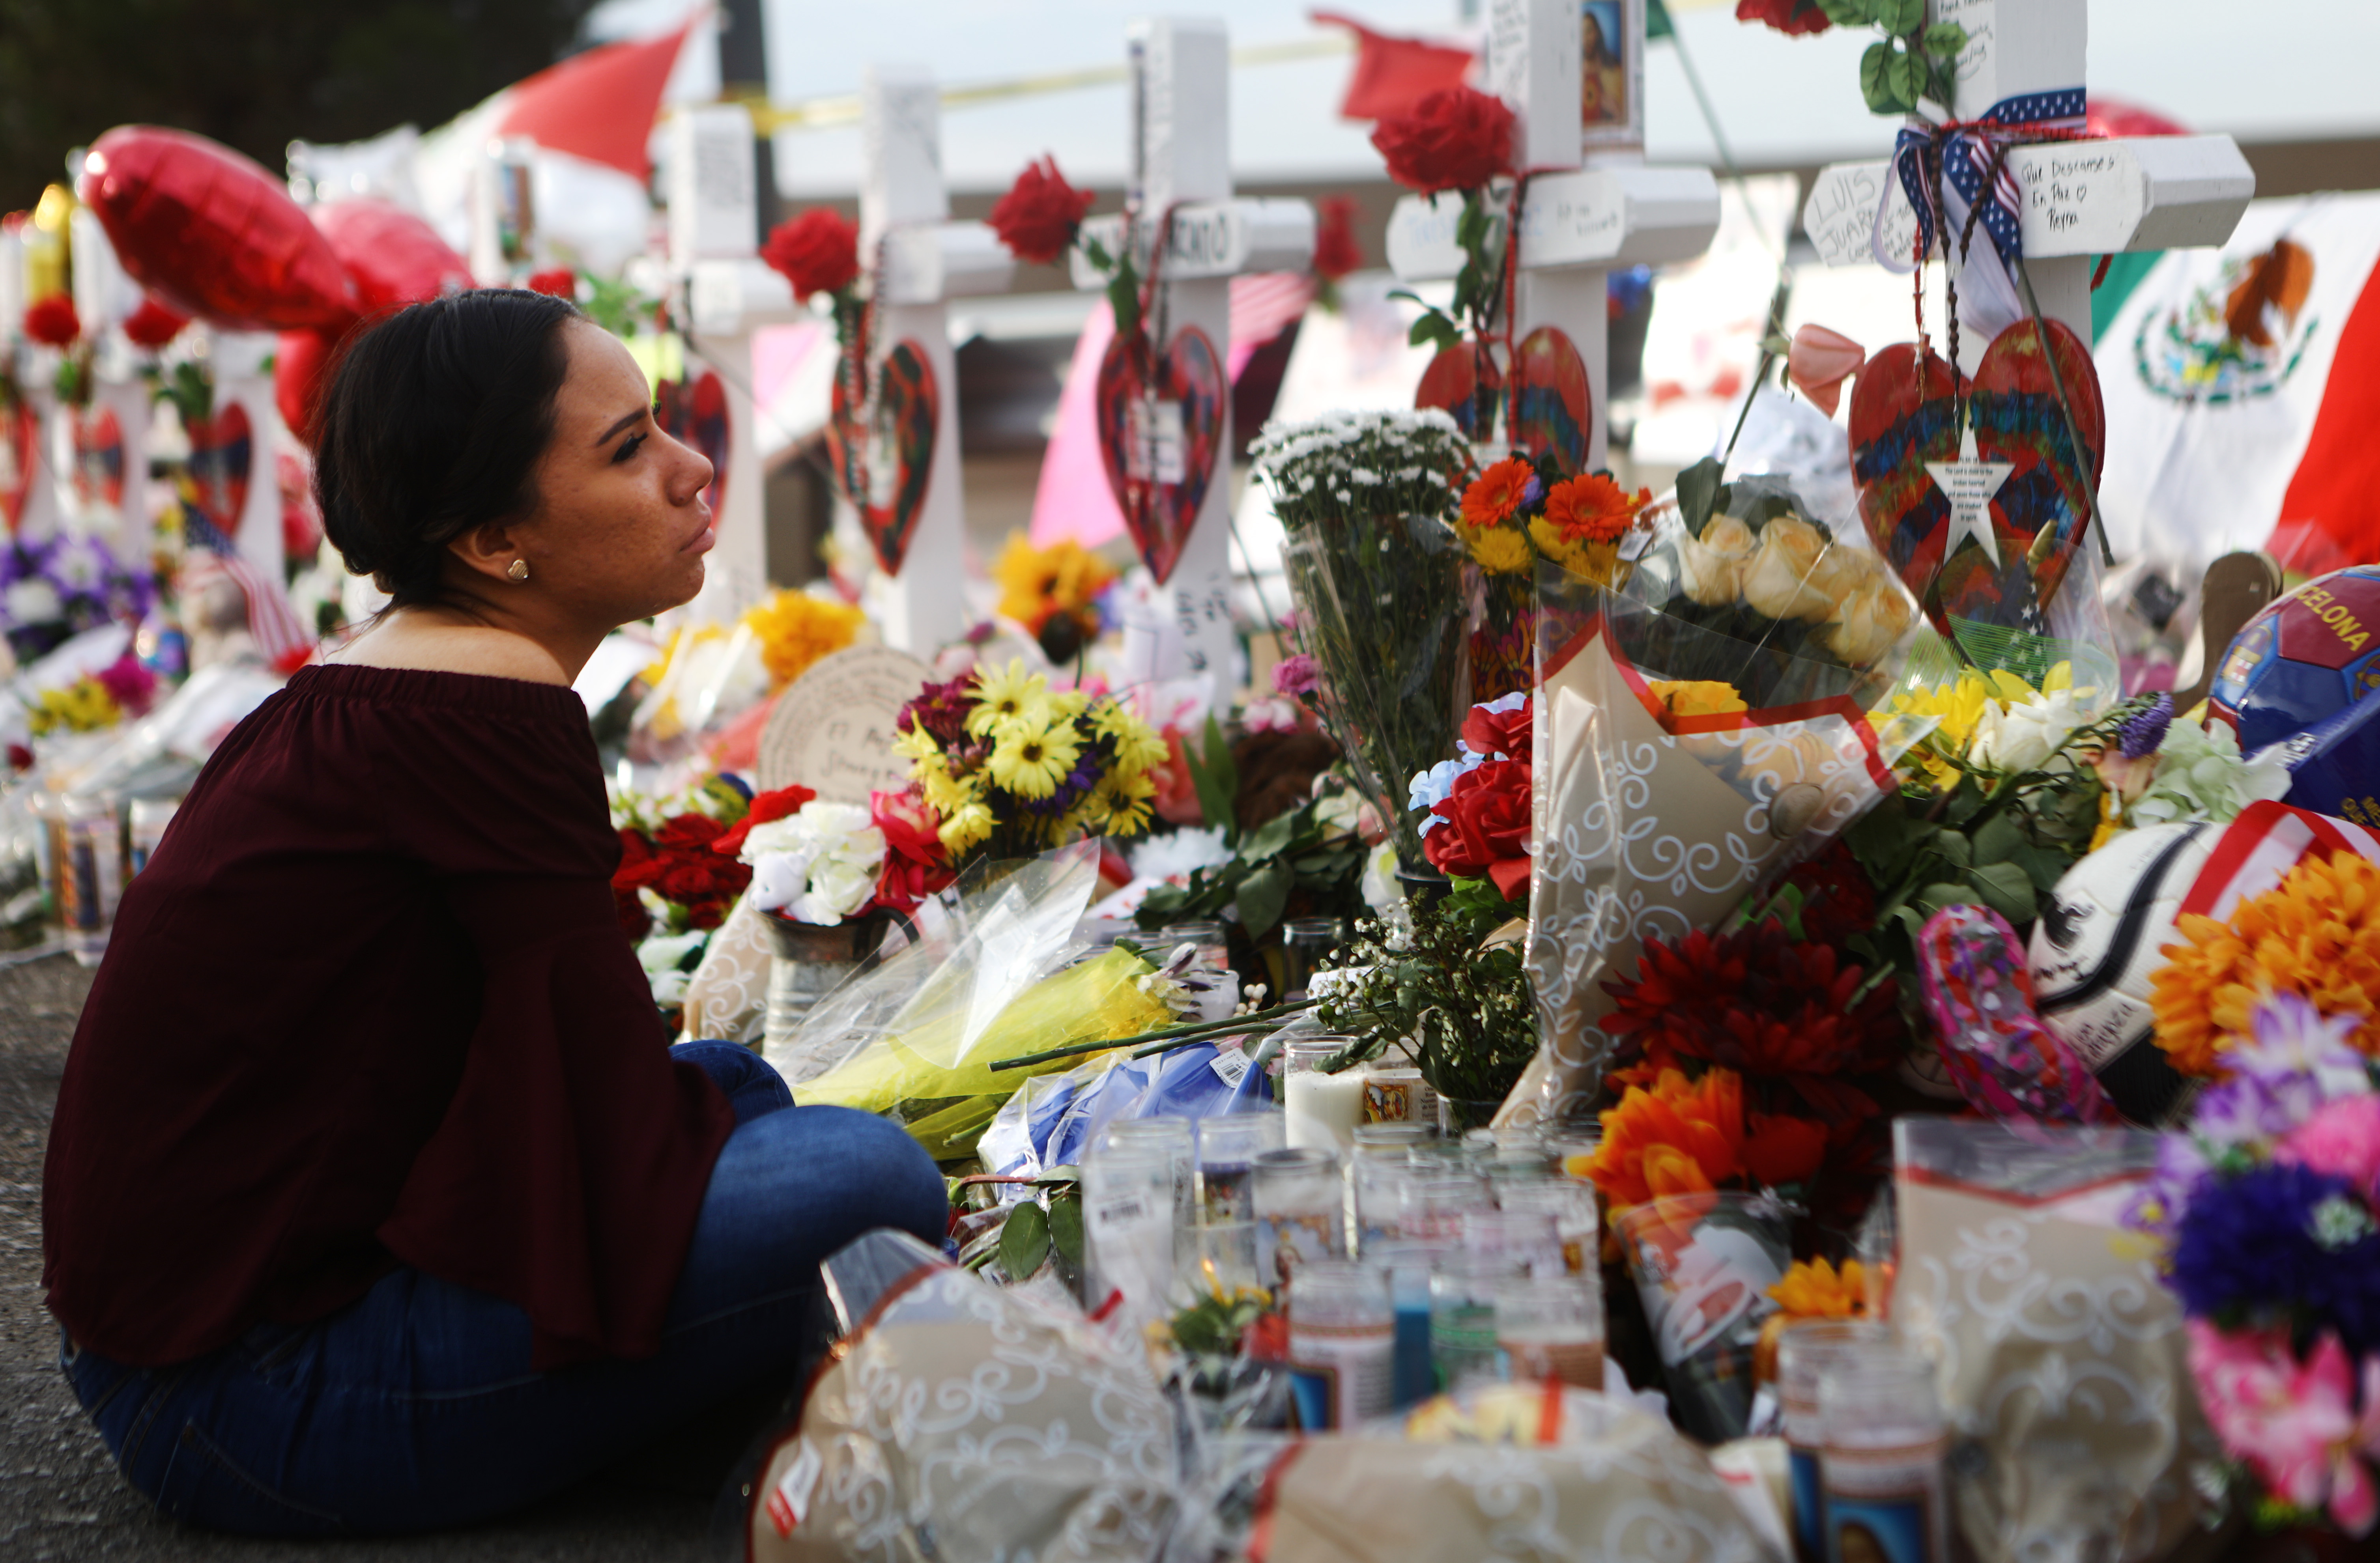 Yamileth Lopez sits while holding a photo of her deceased friend Javier Amir Rodriguez at a makeshift memorial for victims outside Walmart on Aug. 6, 2019 in El Paso, Texas.